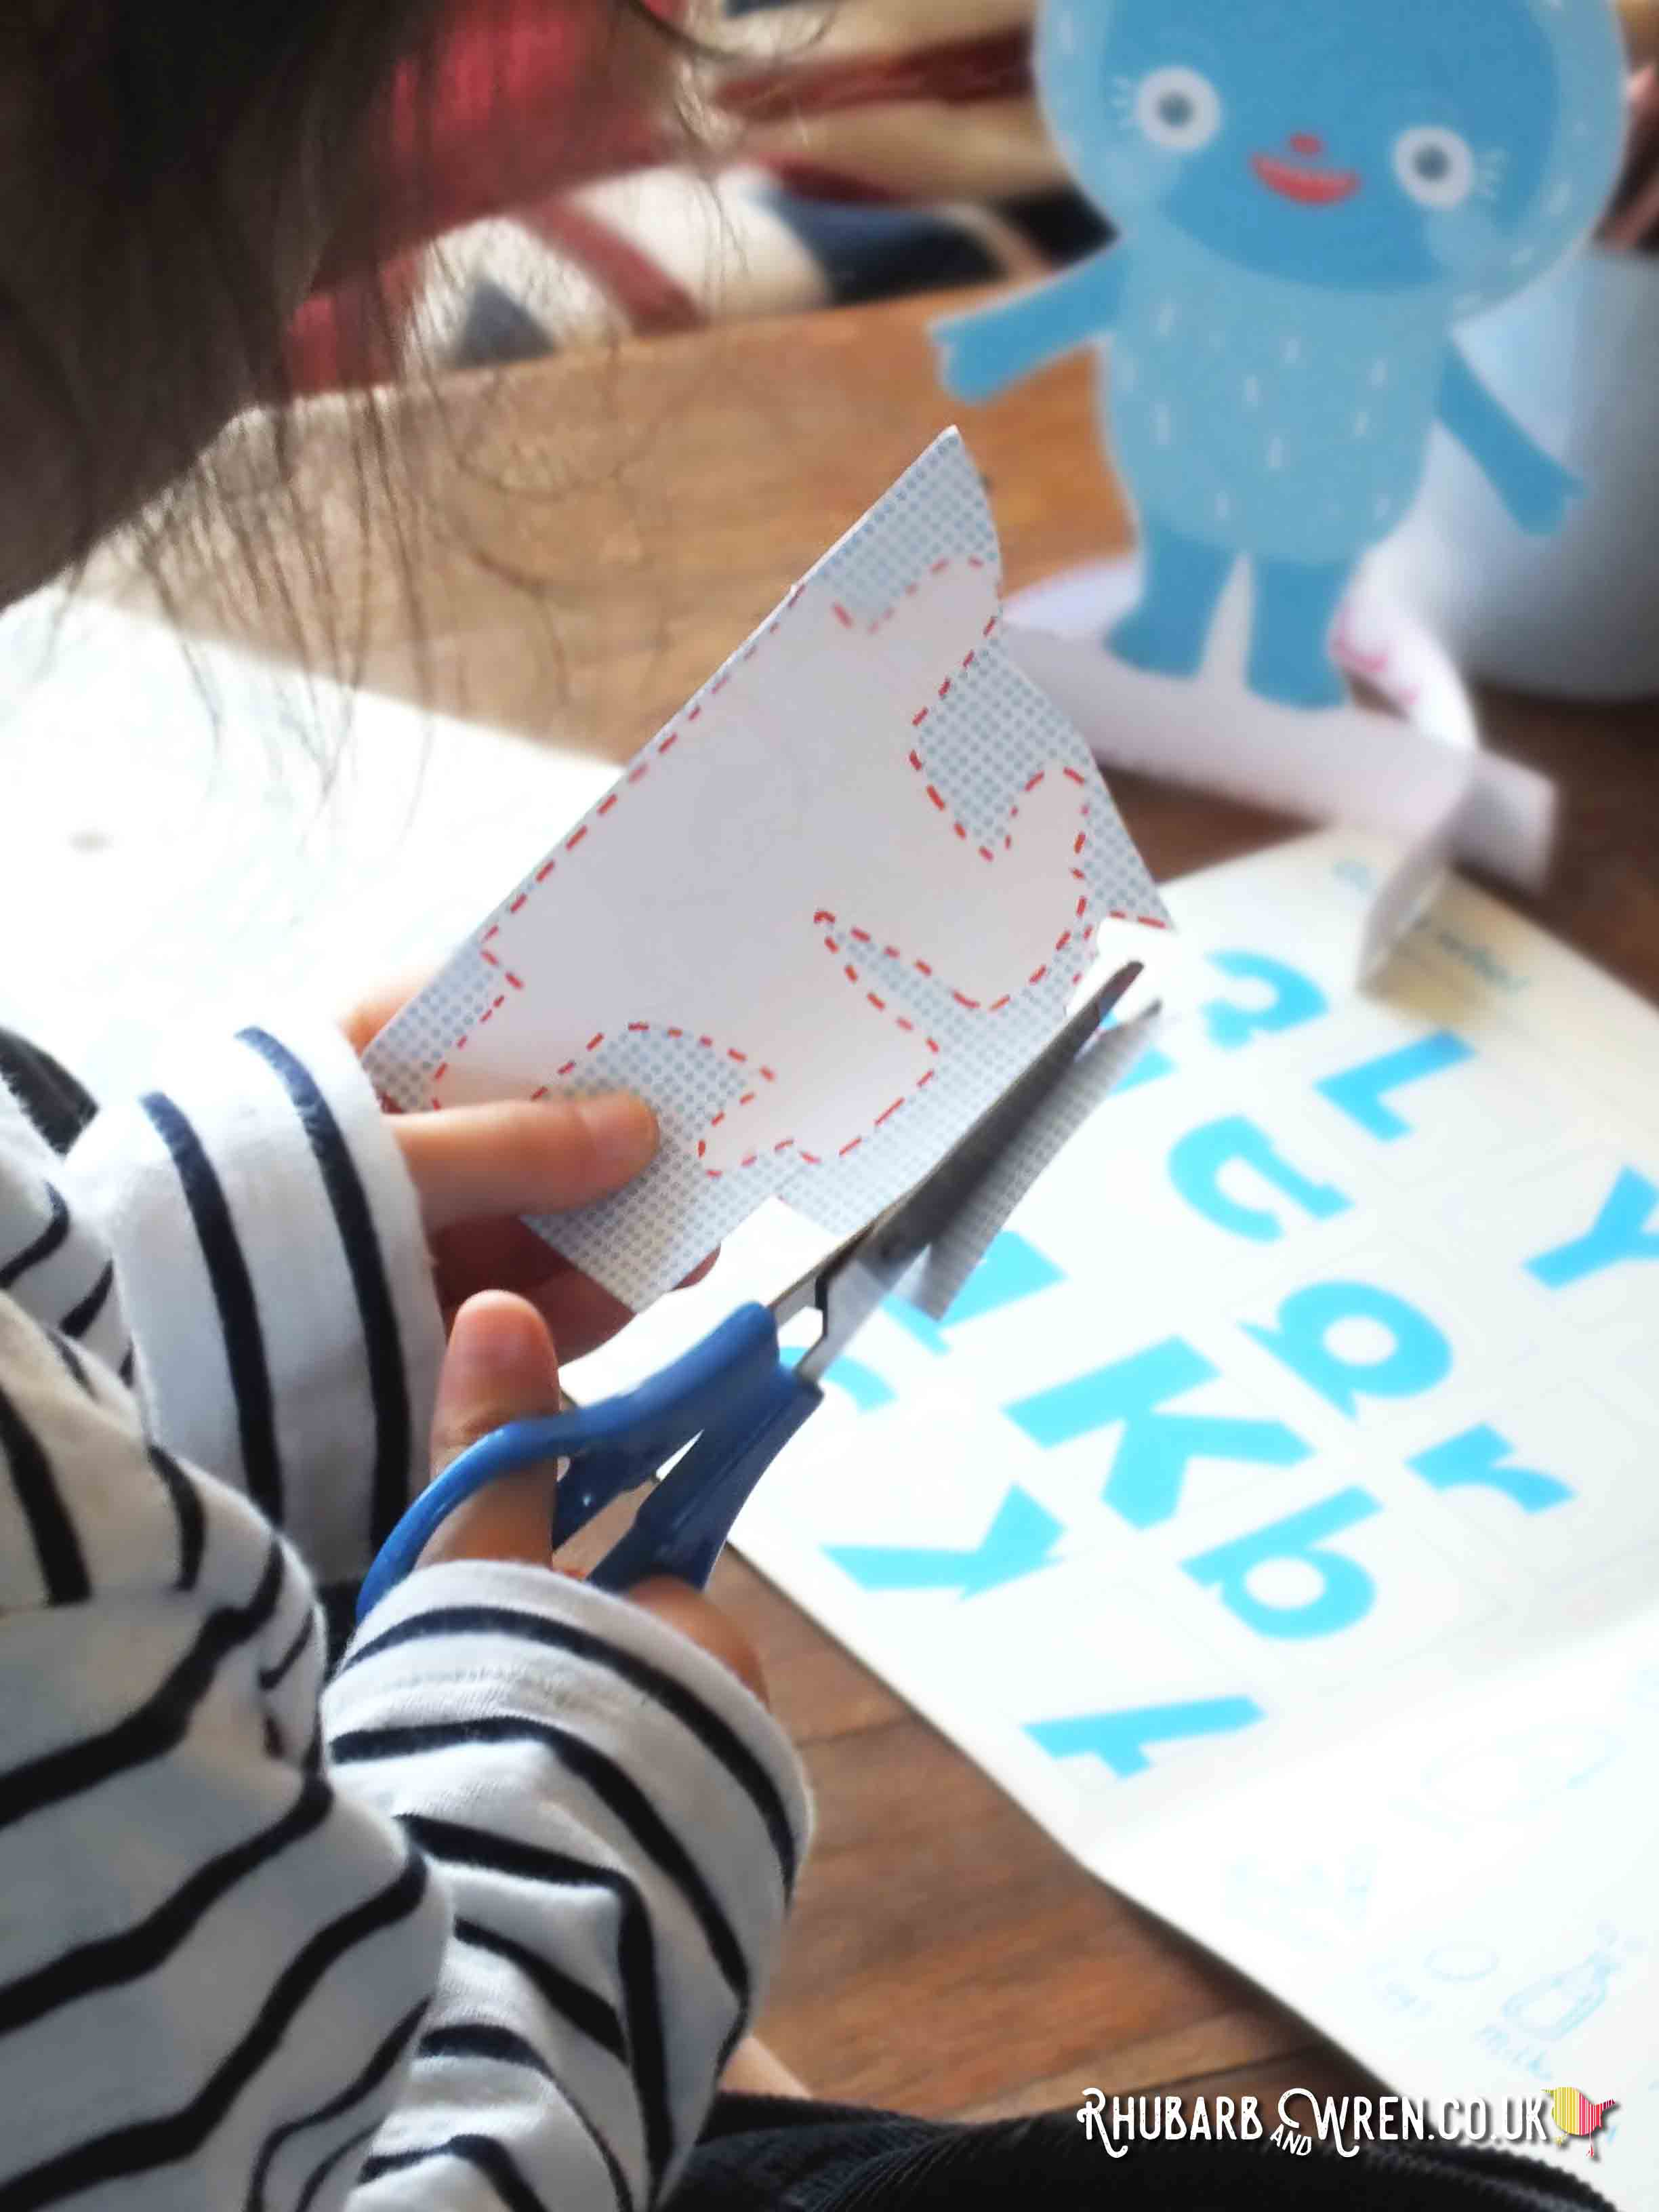 Child cutting out paper shapes from Okido magazine with scissors